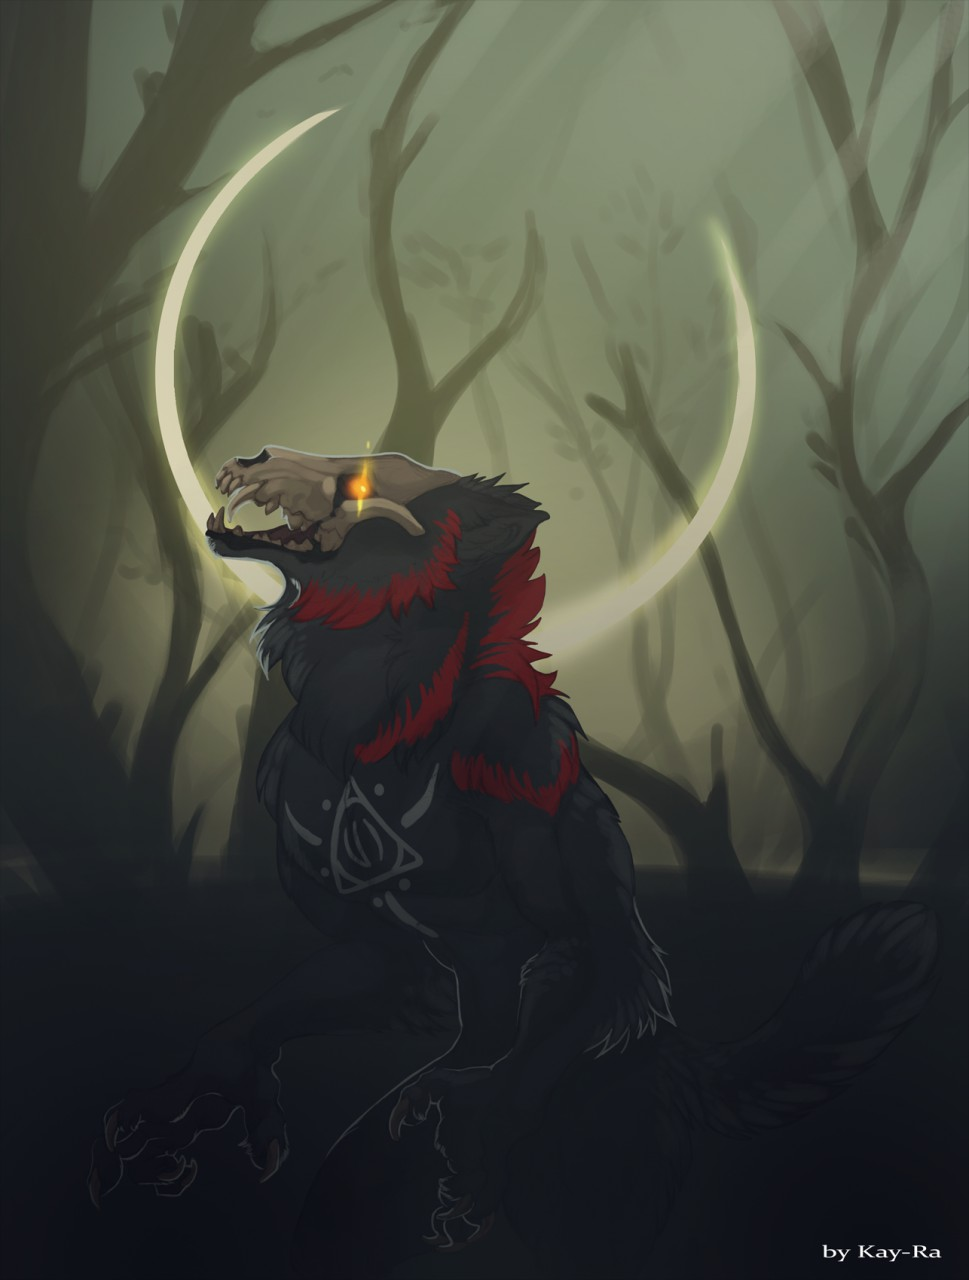 The demon in the woods